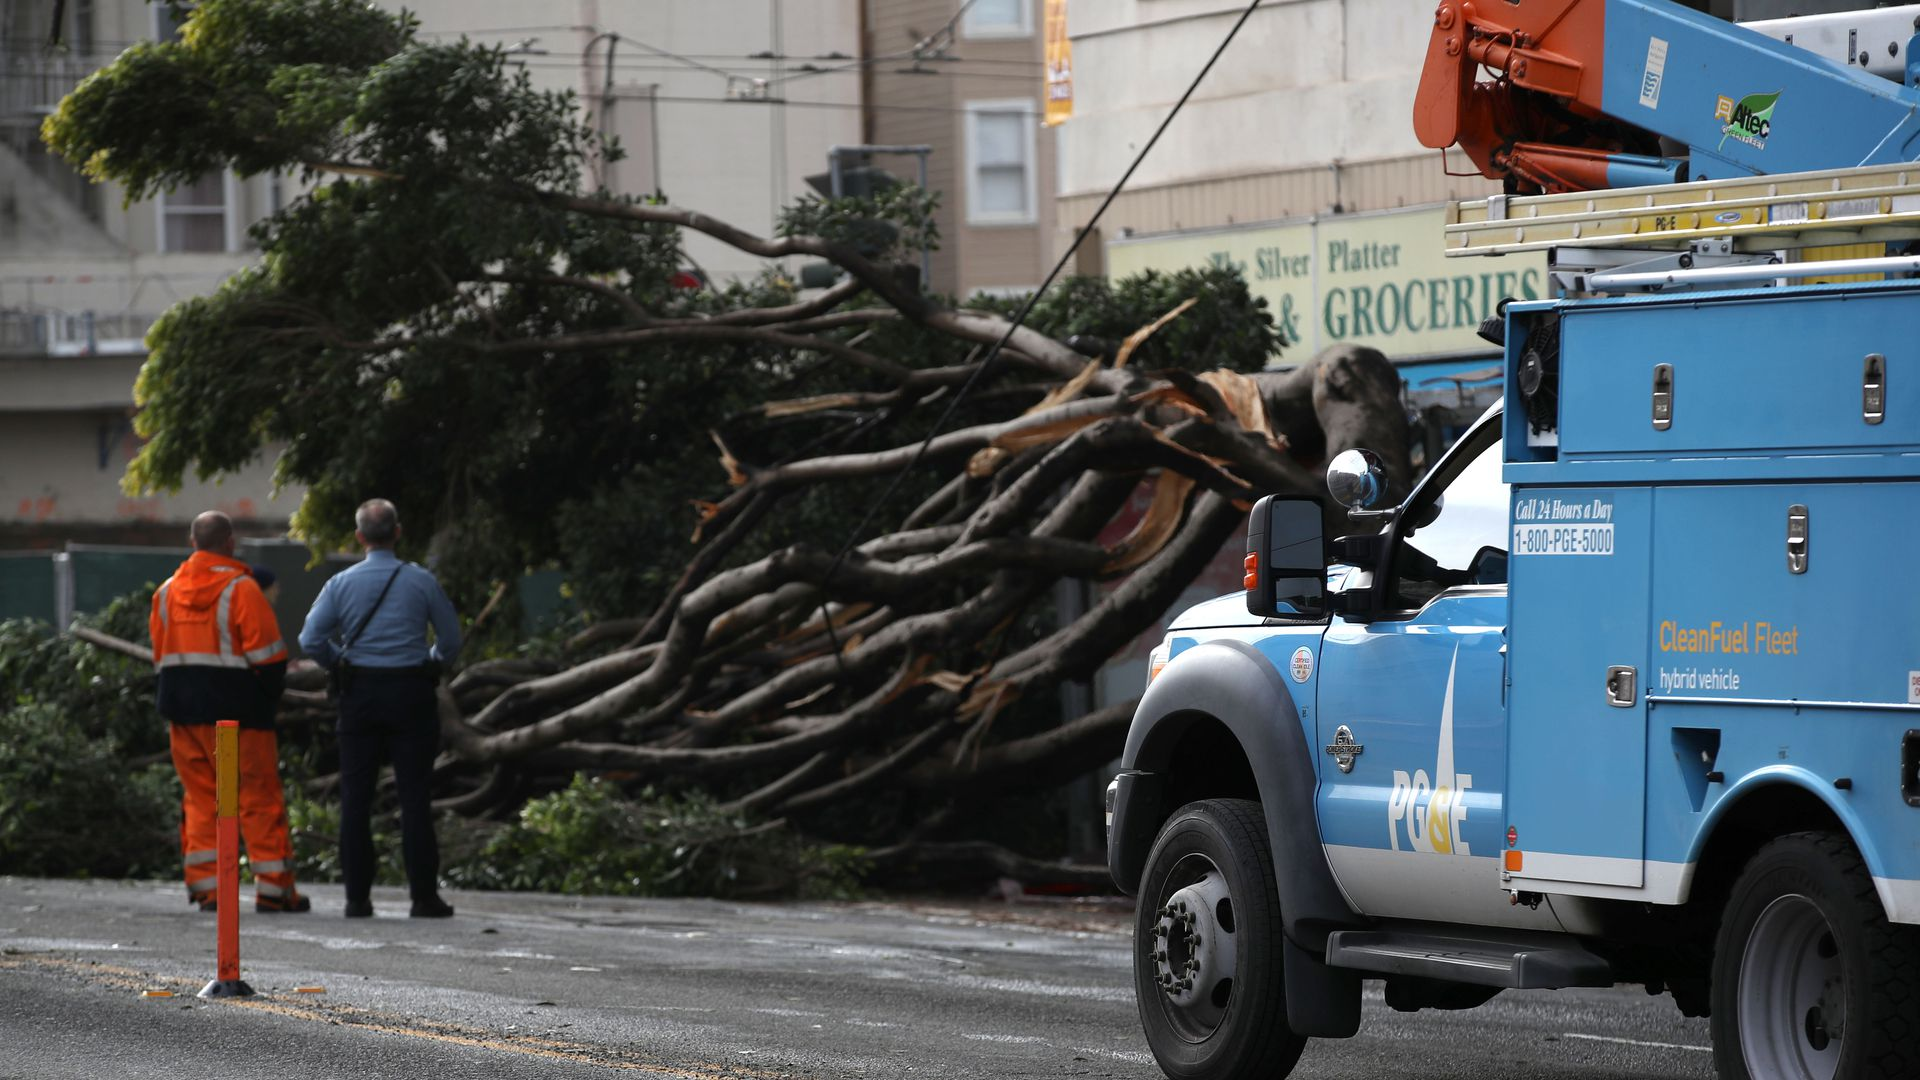 PG&E truck surveys damage from fallen tree